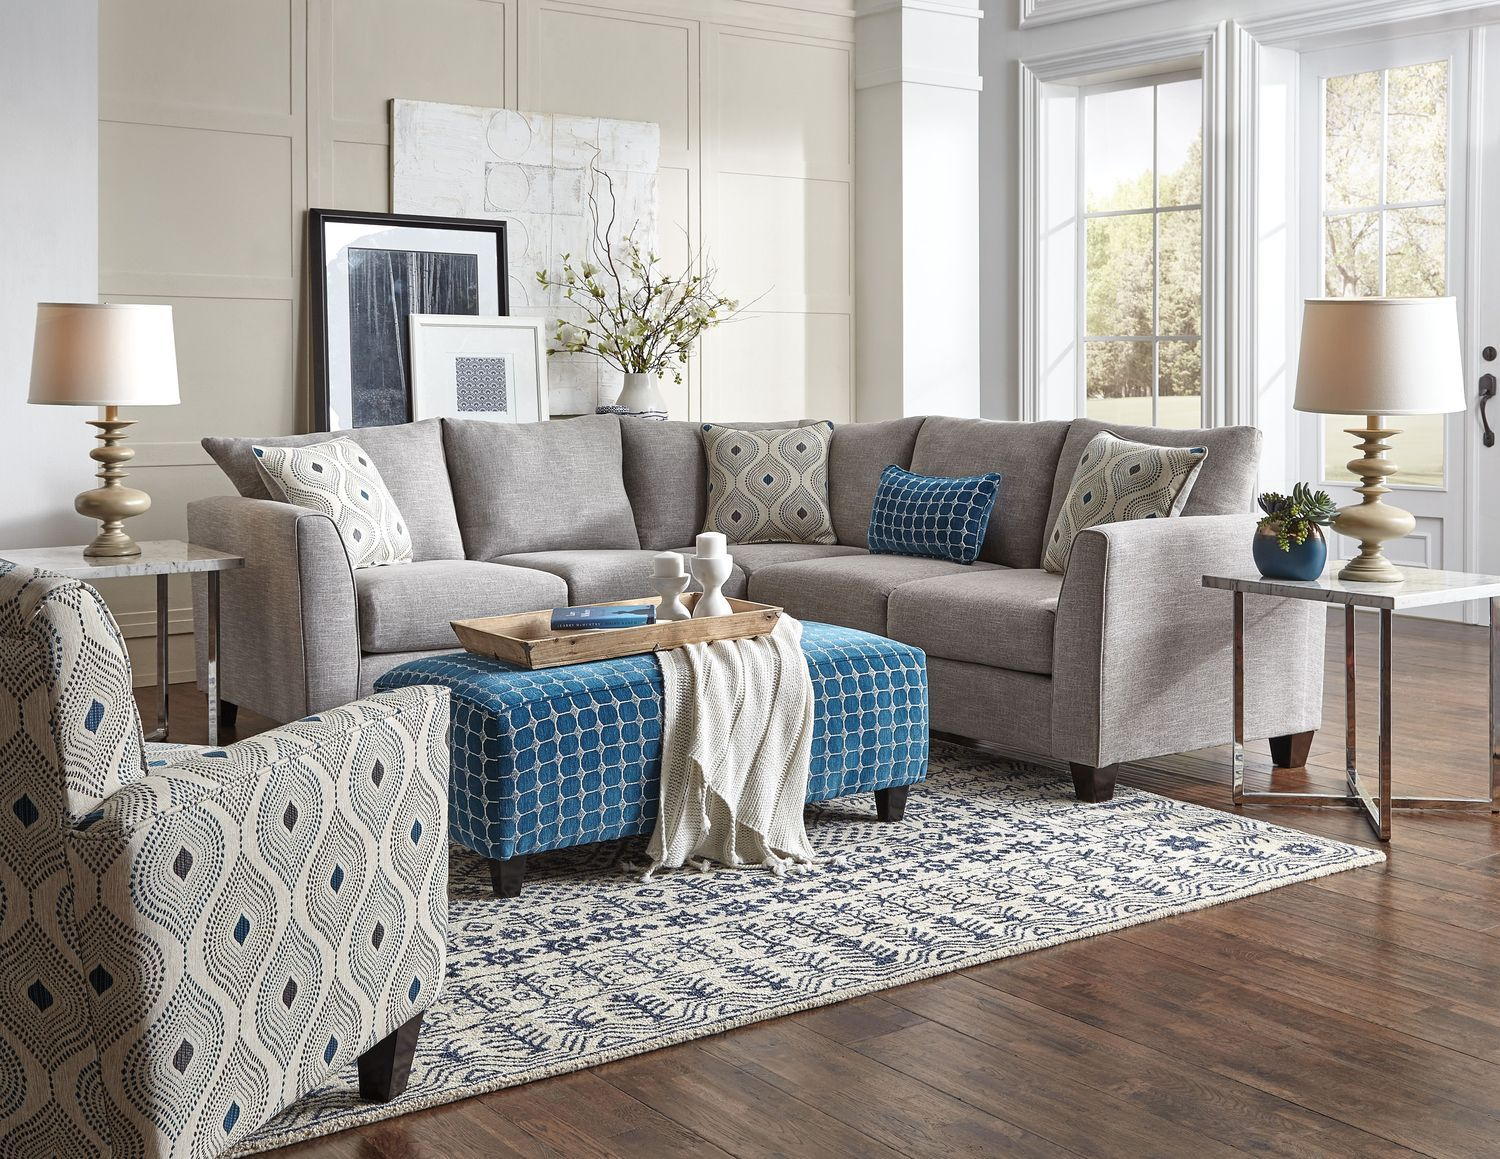 975 Living Room Furniture Roswell 2 Piece Sectional Sofa